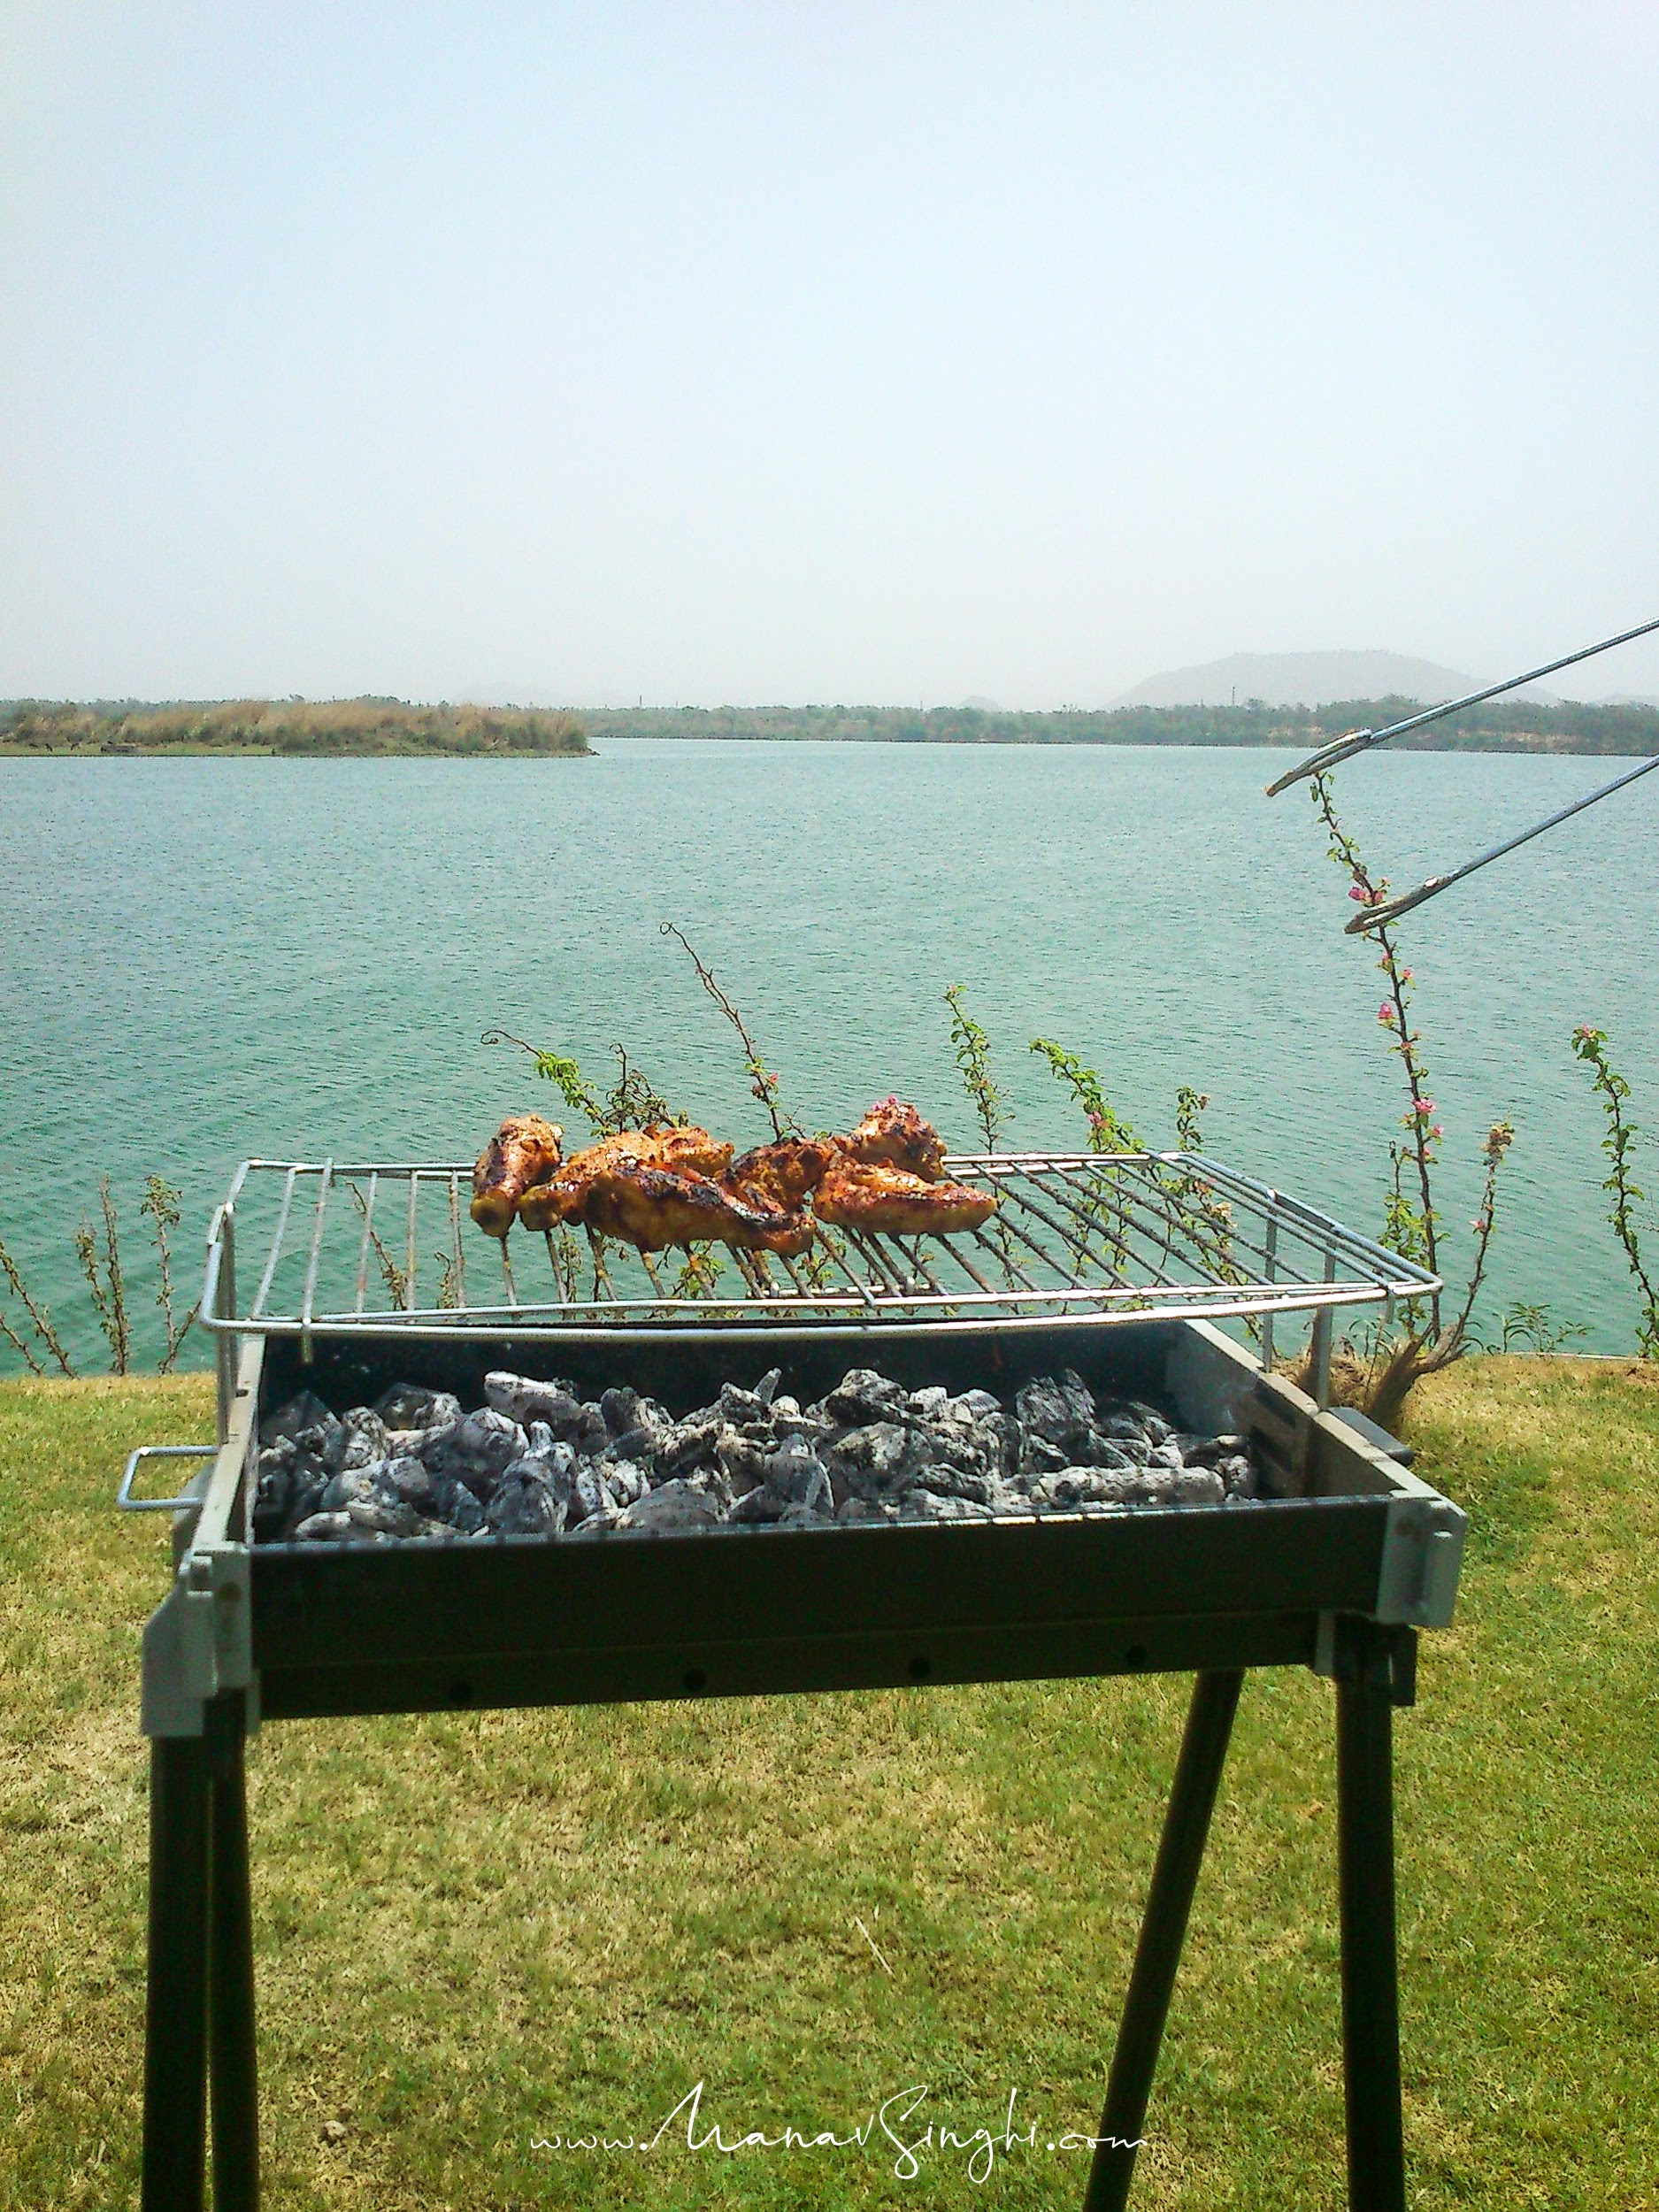 Mobile Shot Taken at Kanota Dam, Jaipur on 20-June-2012 & our Barbecue Party at Private Farm House adjacent to lake. . :)